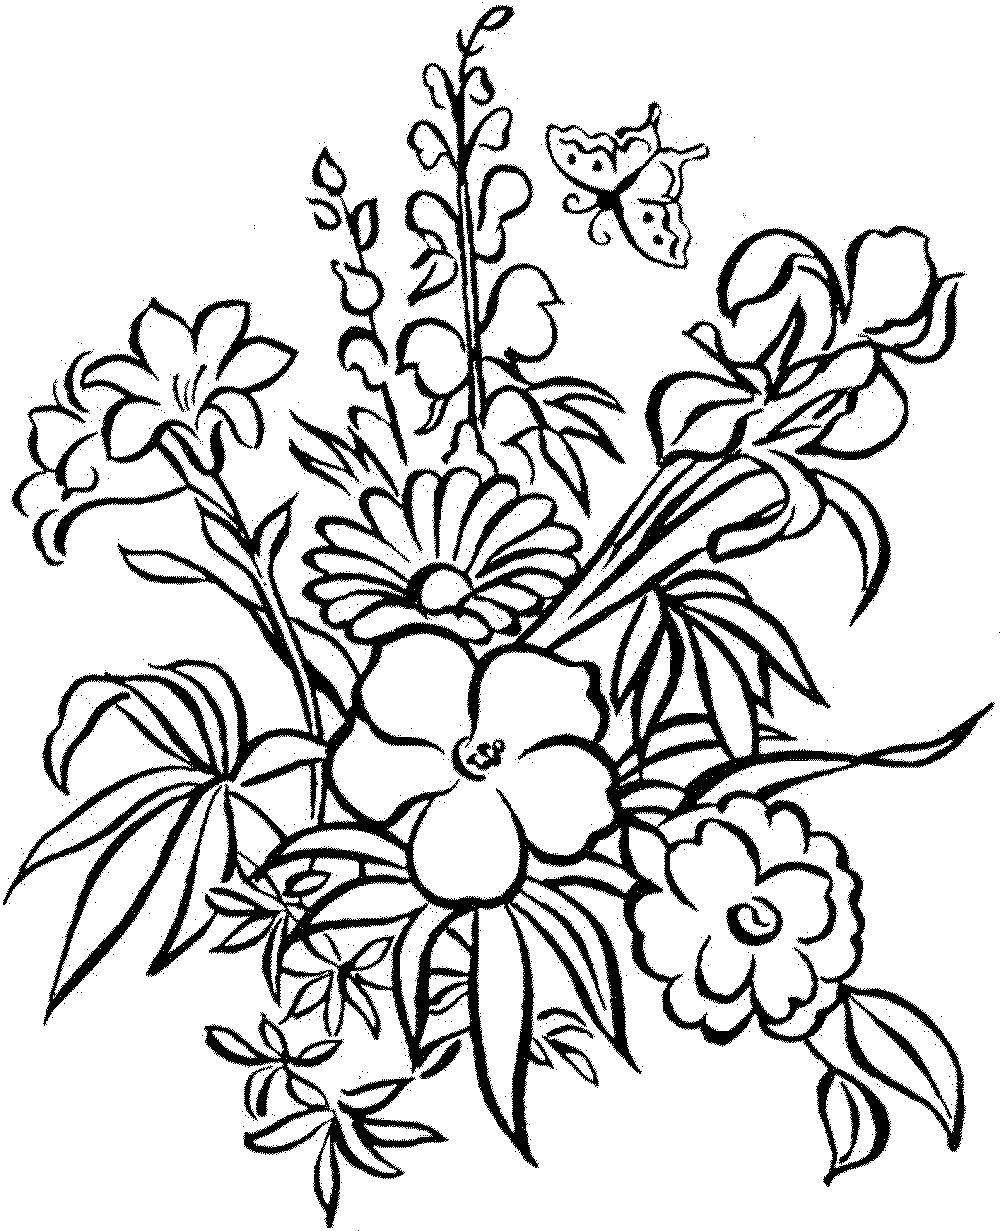 coloring pages about flowers detailed flower coloring pages to download and print for free pages flowers coloring about